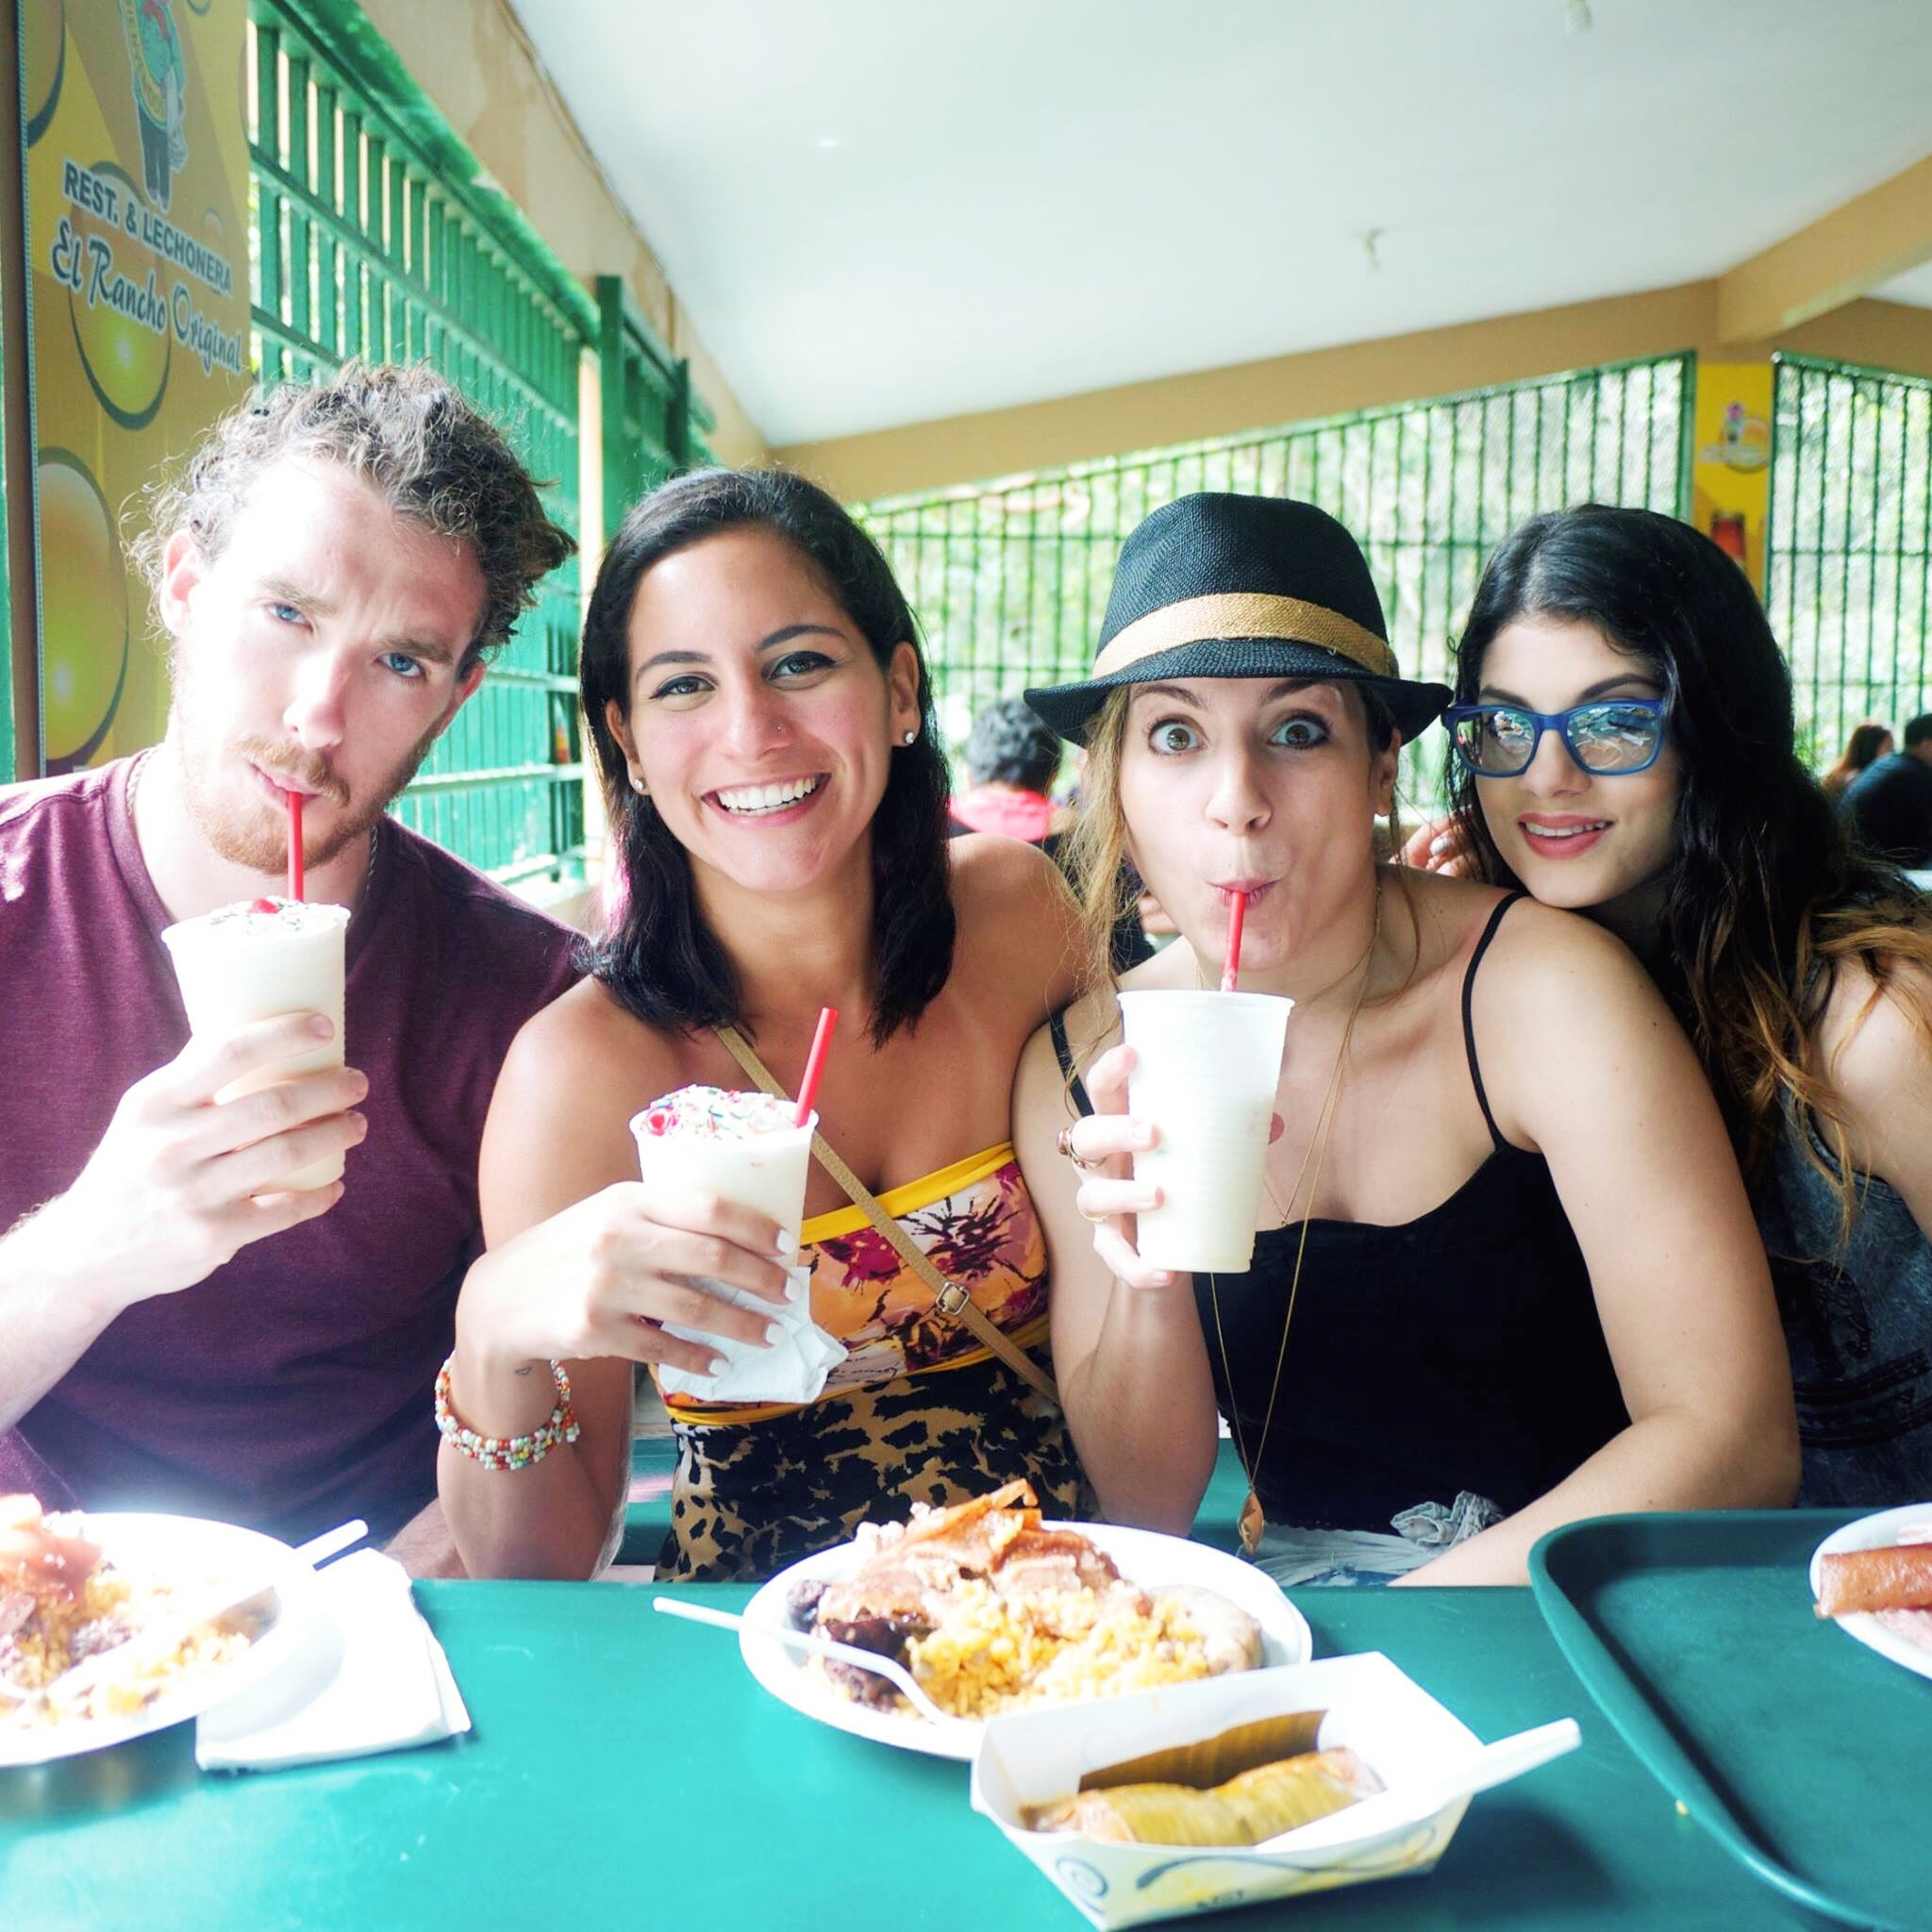 Yes, we like piña coladas and getting caught in the rain.